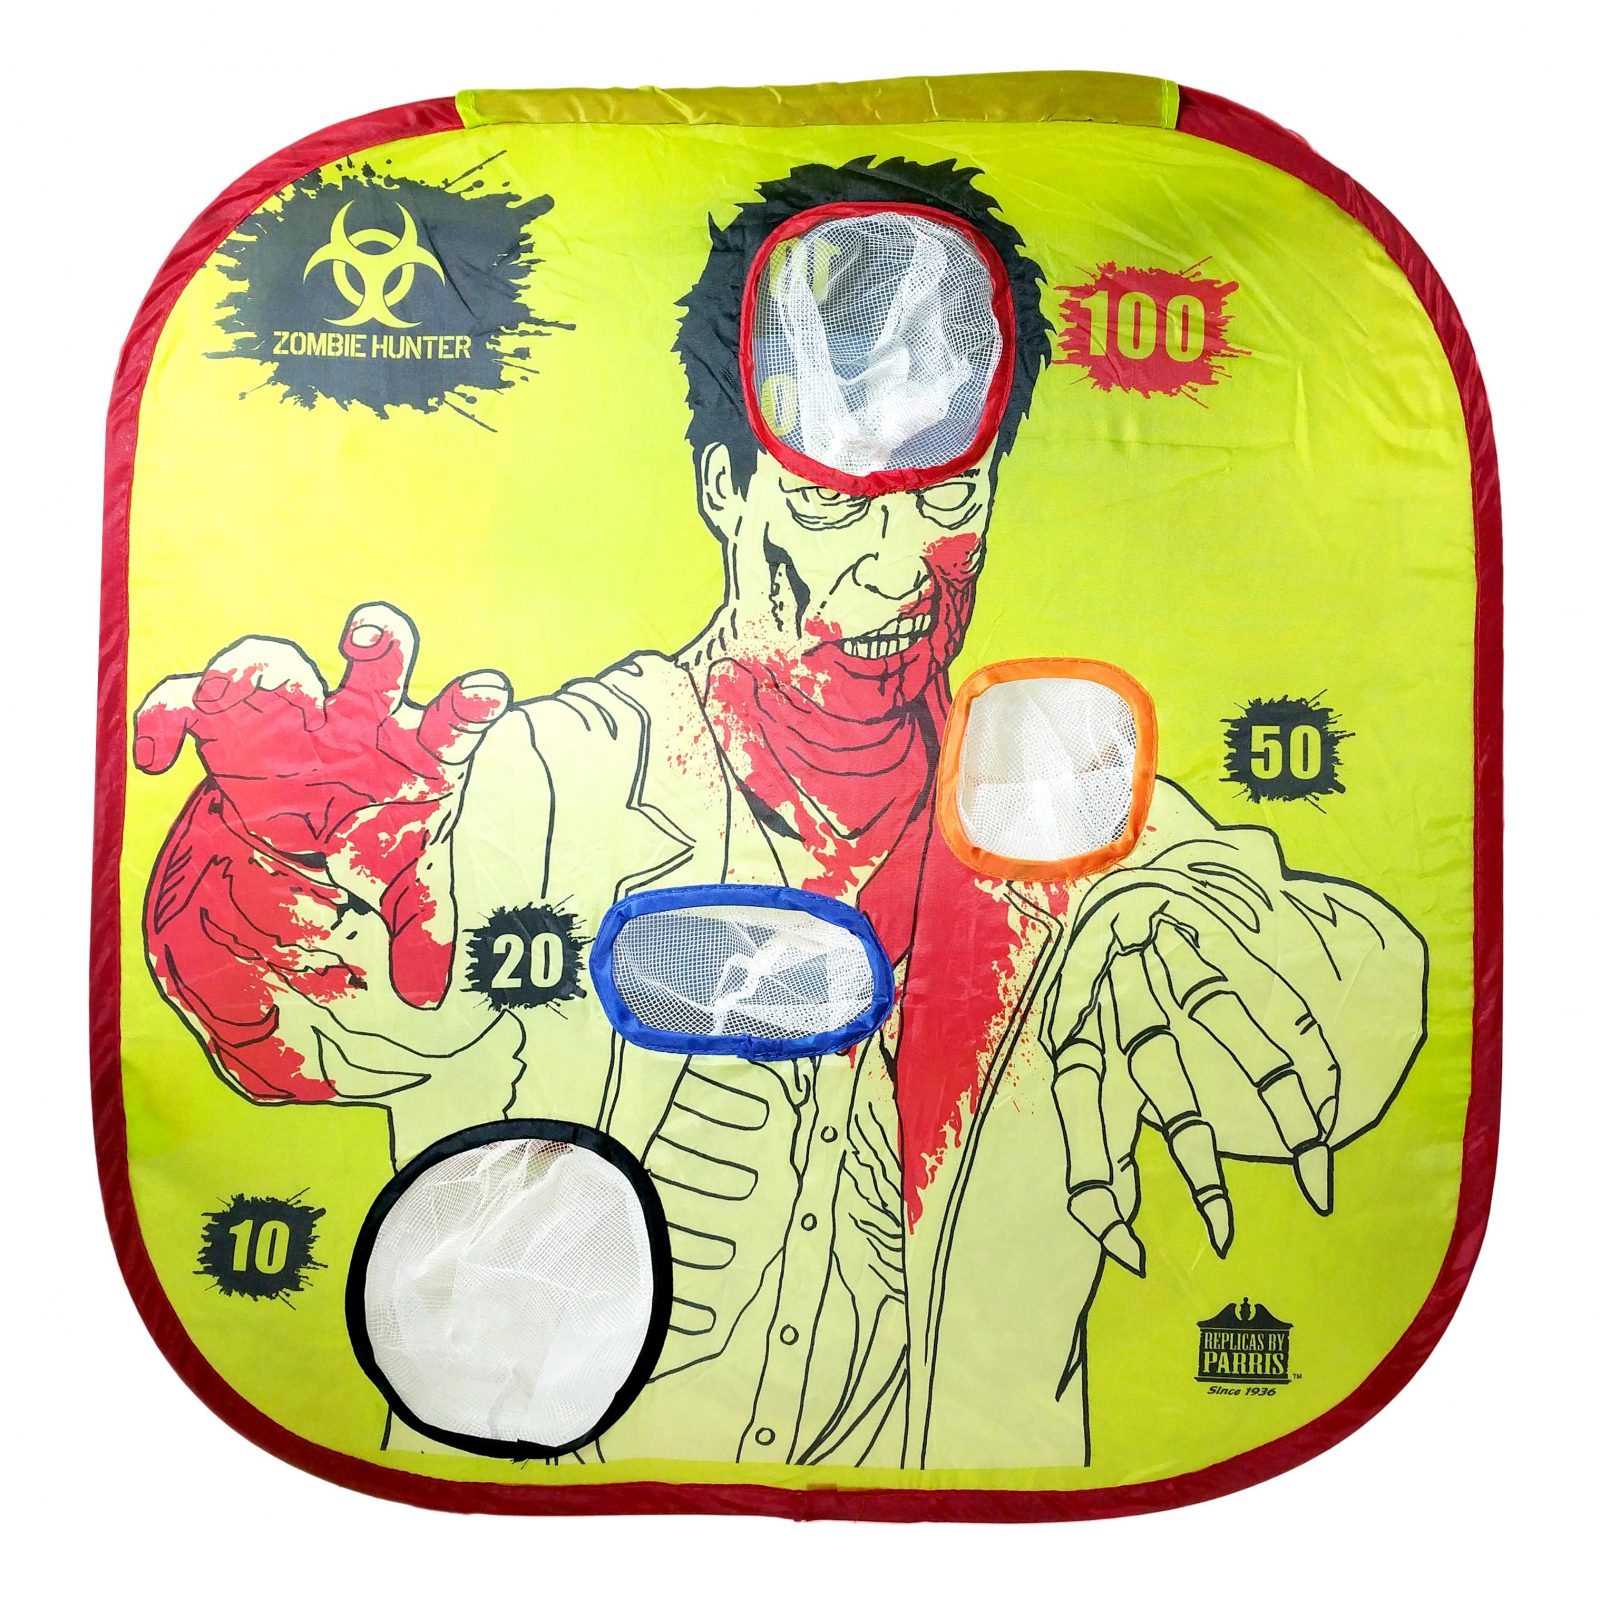 Parris Zombie Hunter Pop Up Target Pocket Catch Waterproof